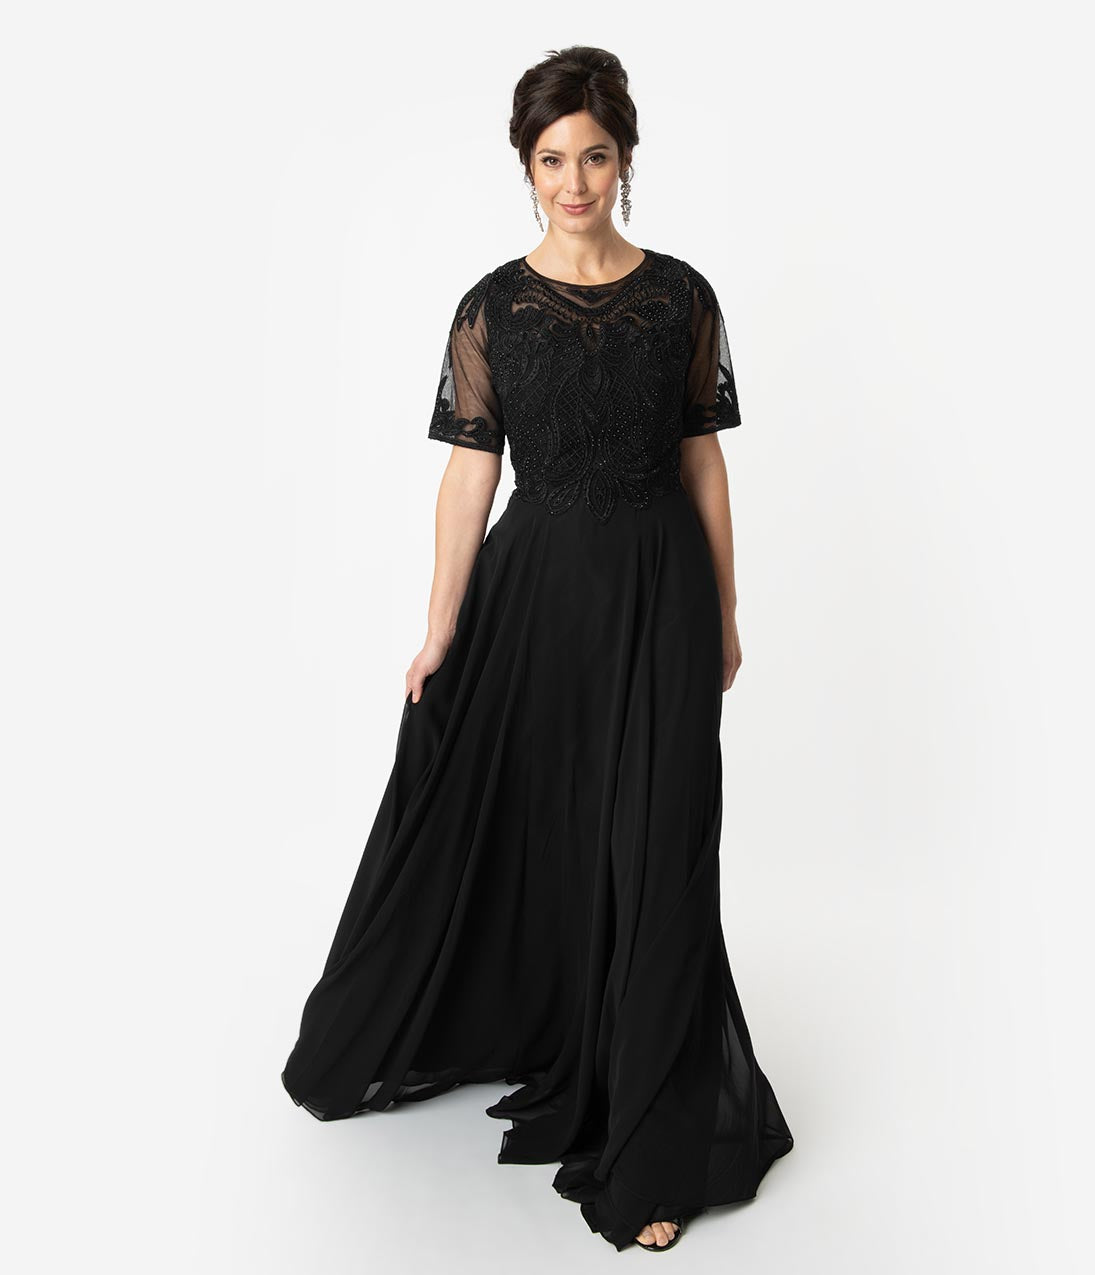 1920s Downton Abbey Dresses Black Chiffon Embellished Short Sleeve Modest Long Dress $168.00 AT vintagedancer.com